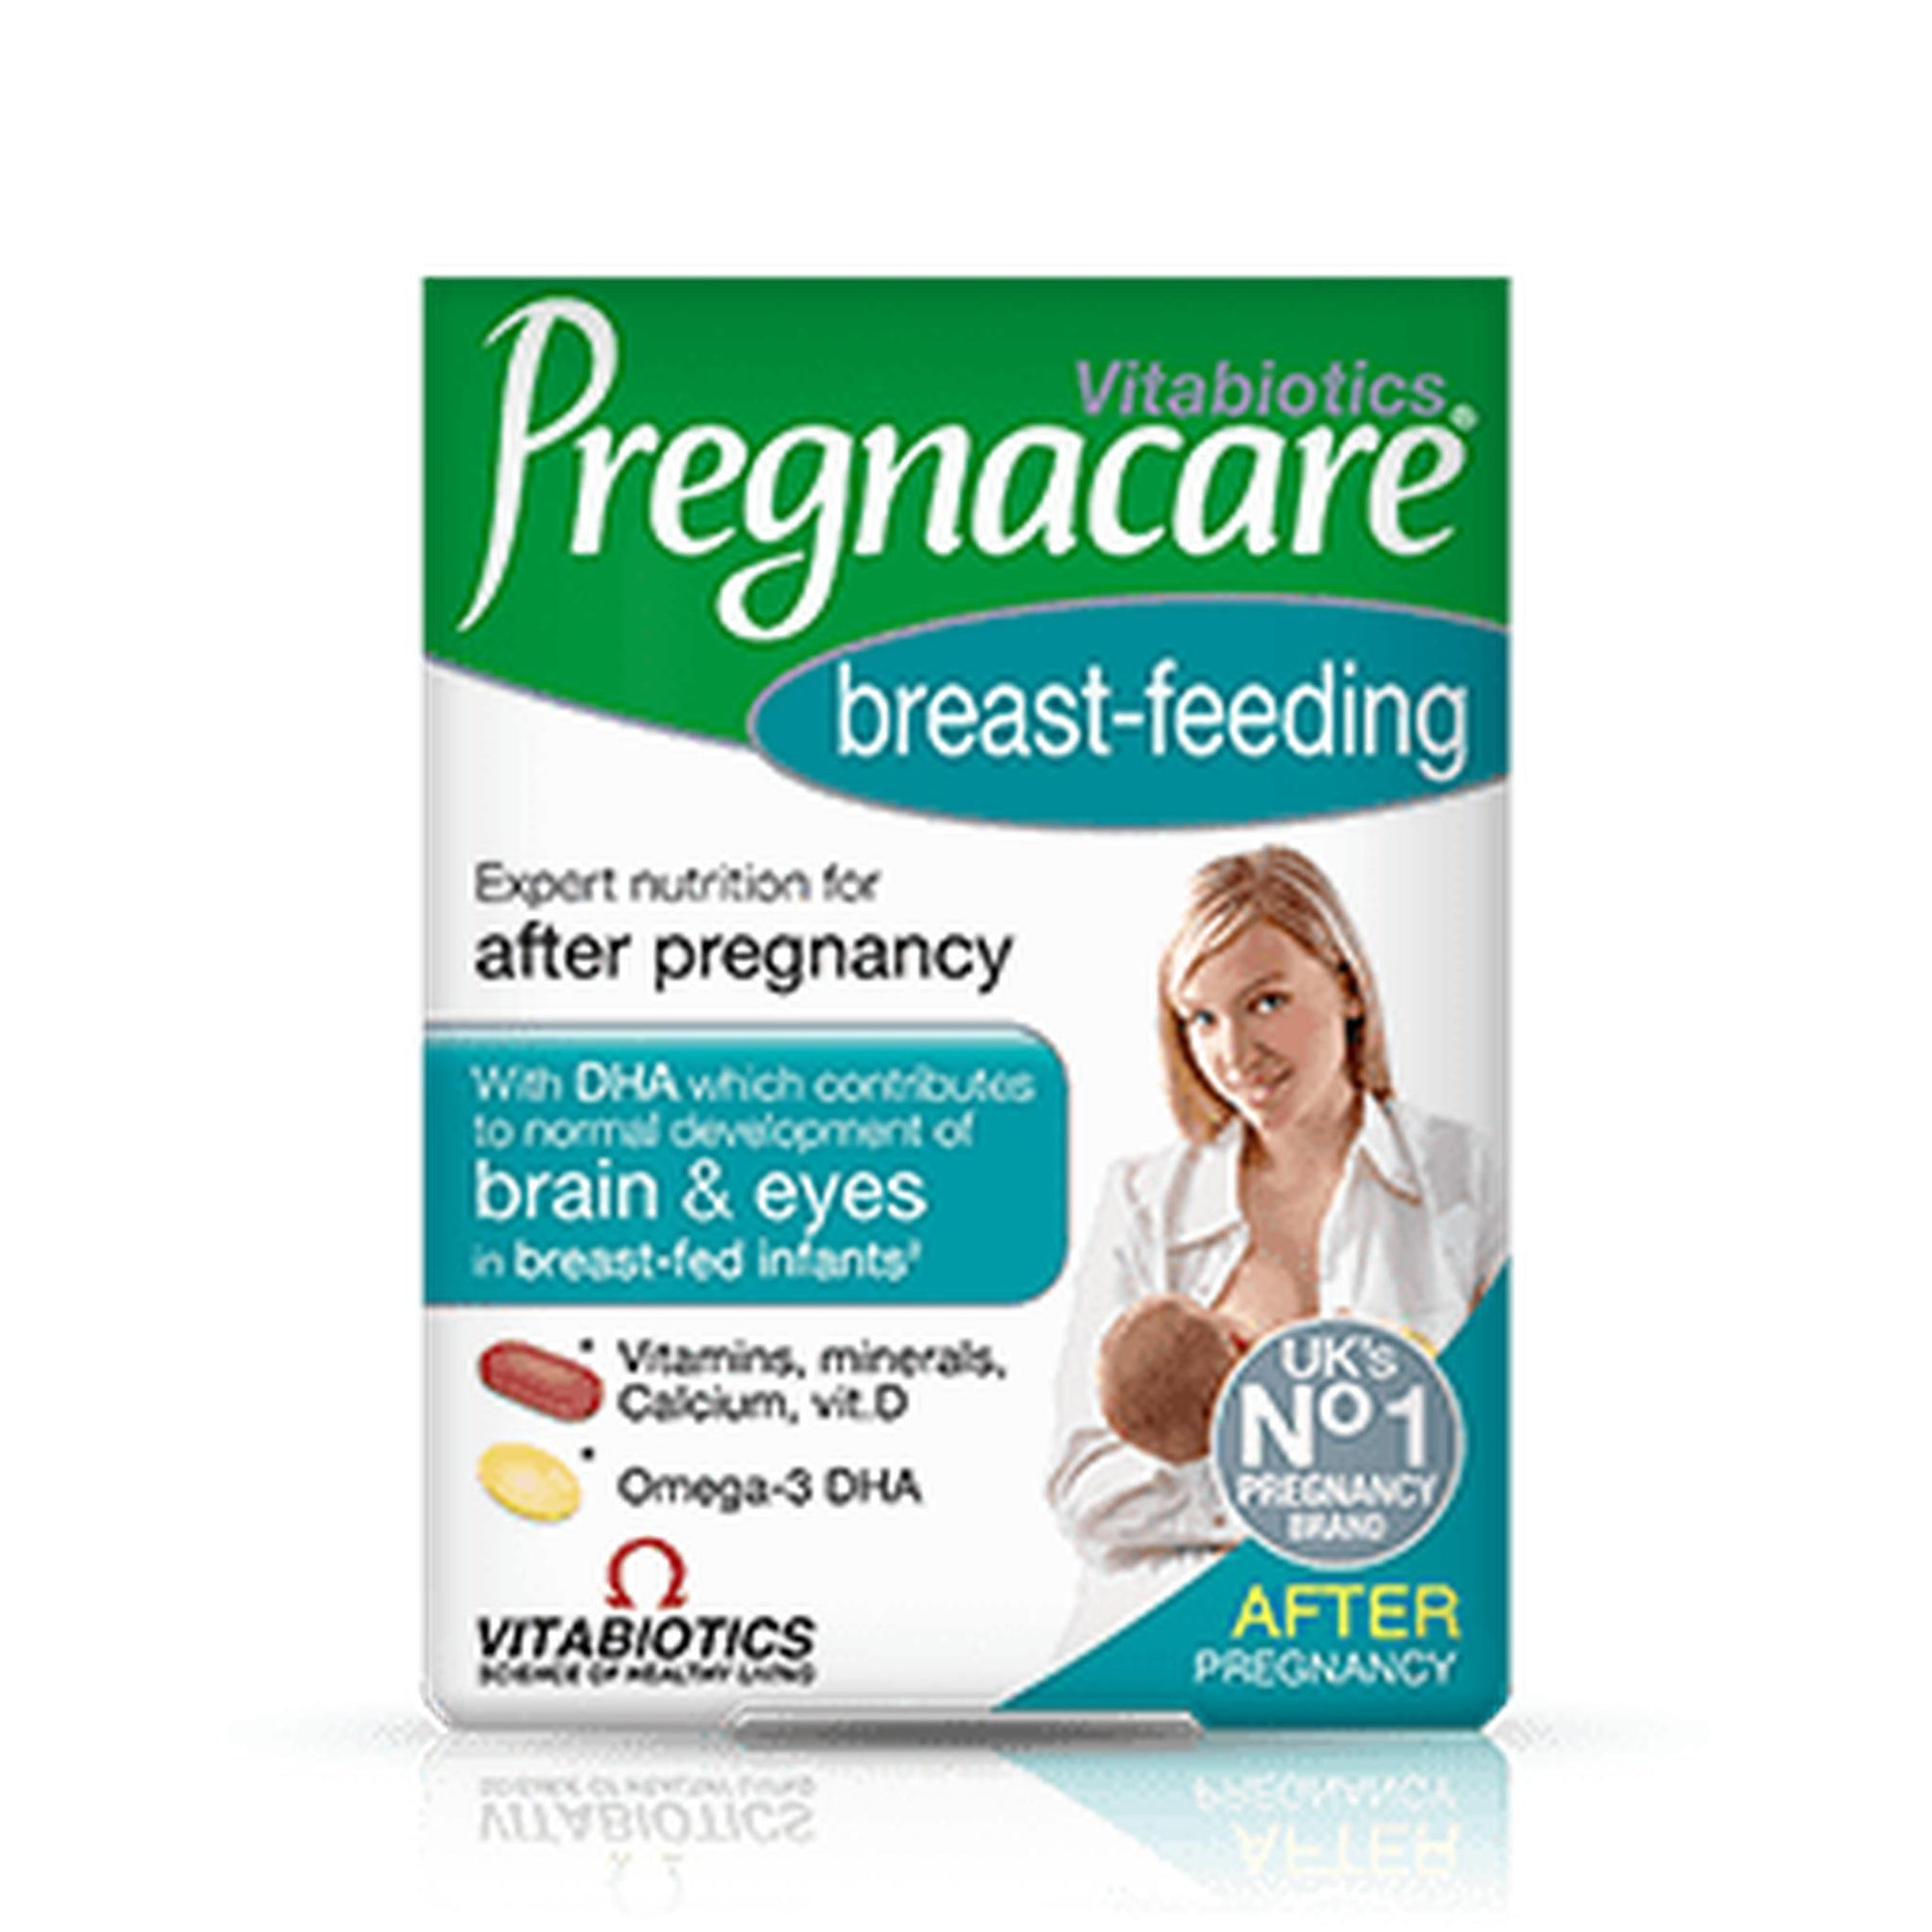 Pregnacare Breastfeeding-Supplements-Mother and Baby Shop Kenya's #1 Online Baby Shop